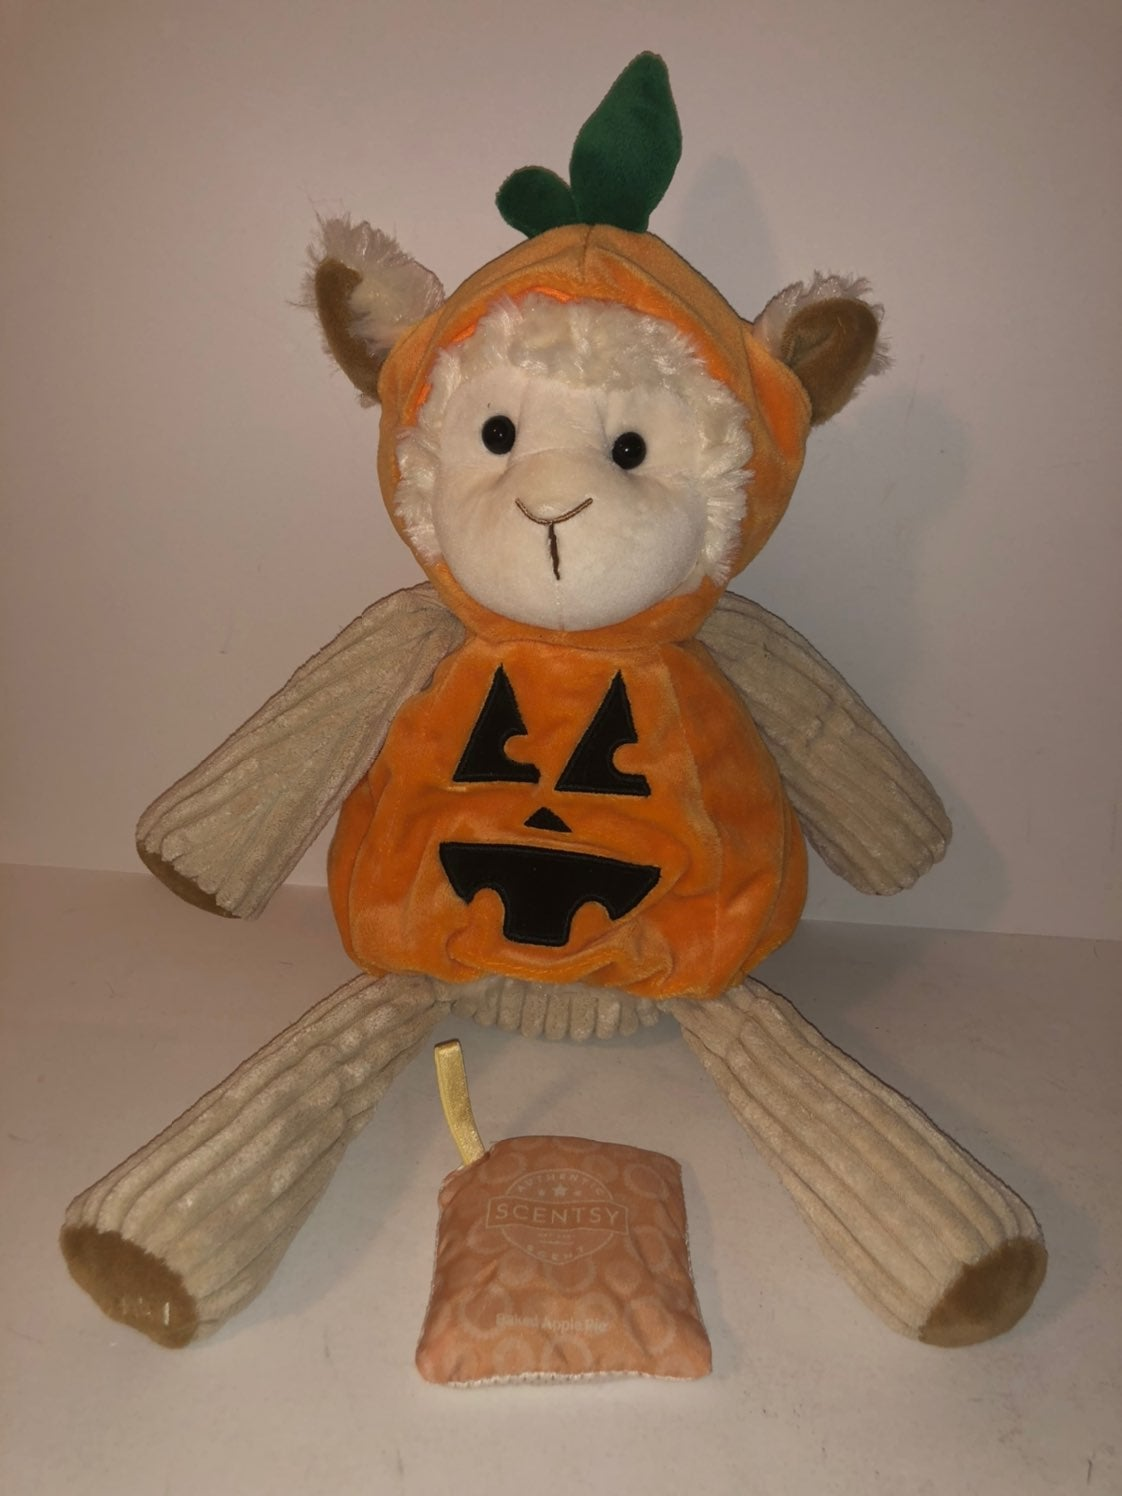 Scentsy buddy lamb with pack